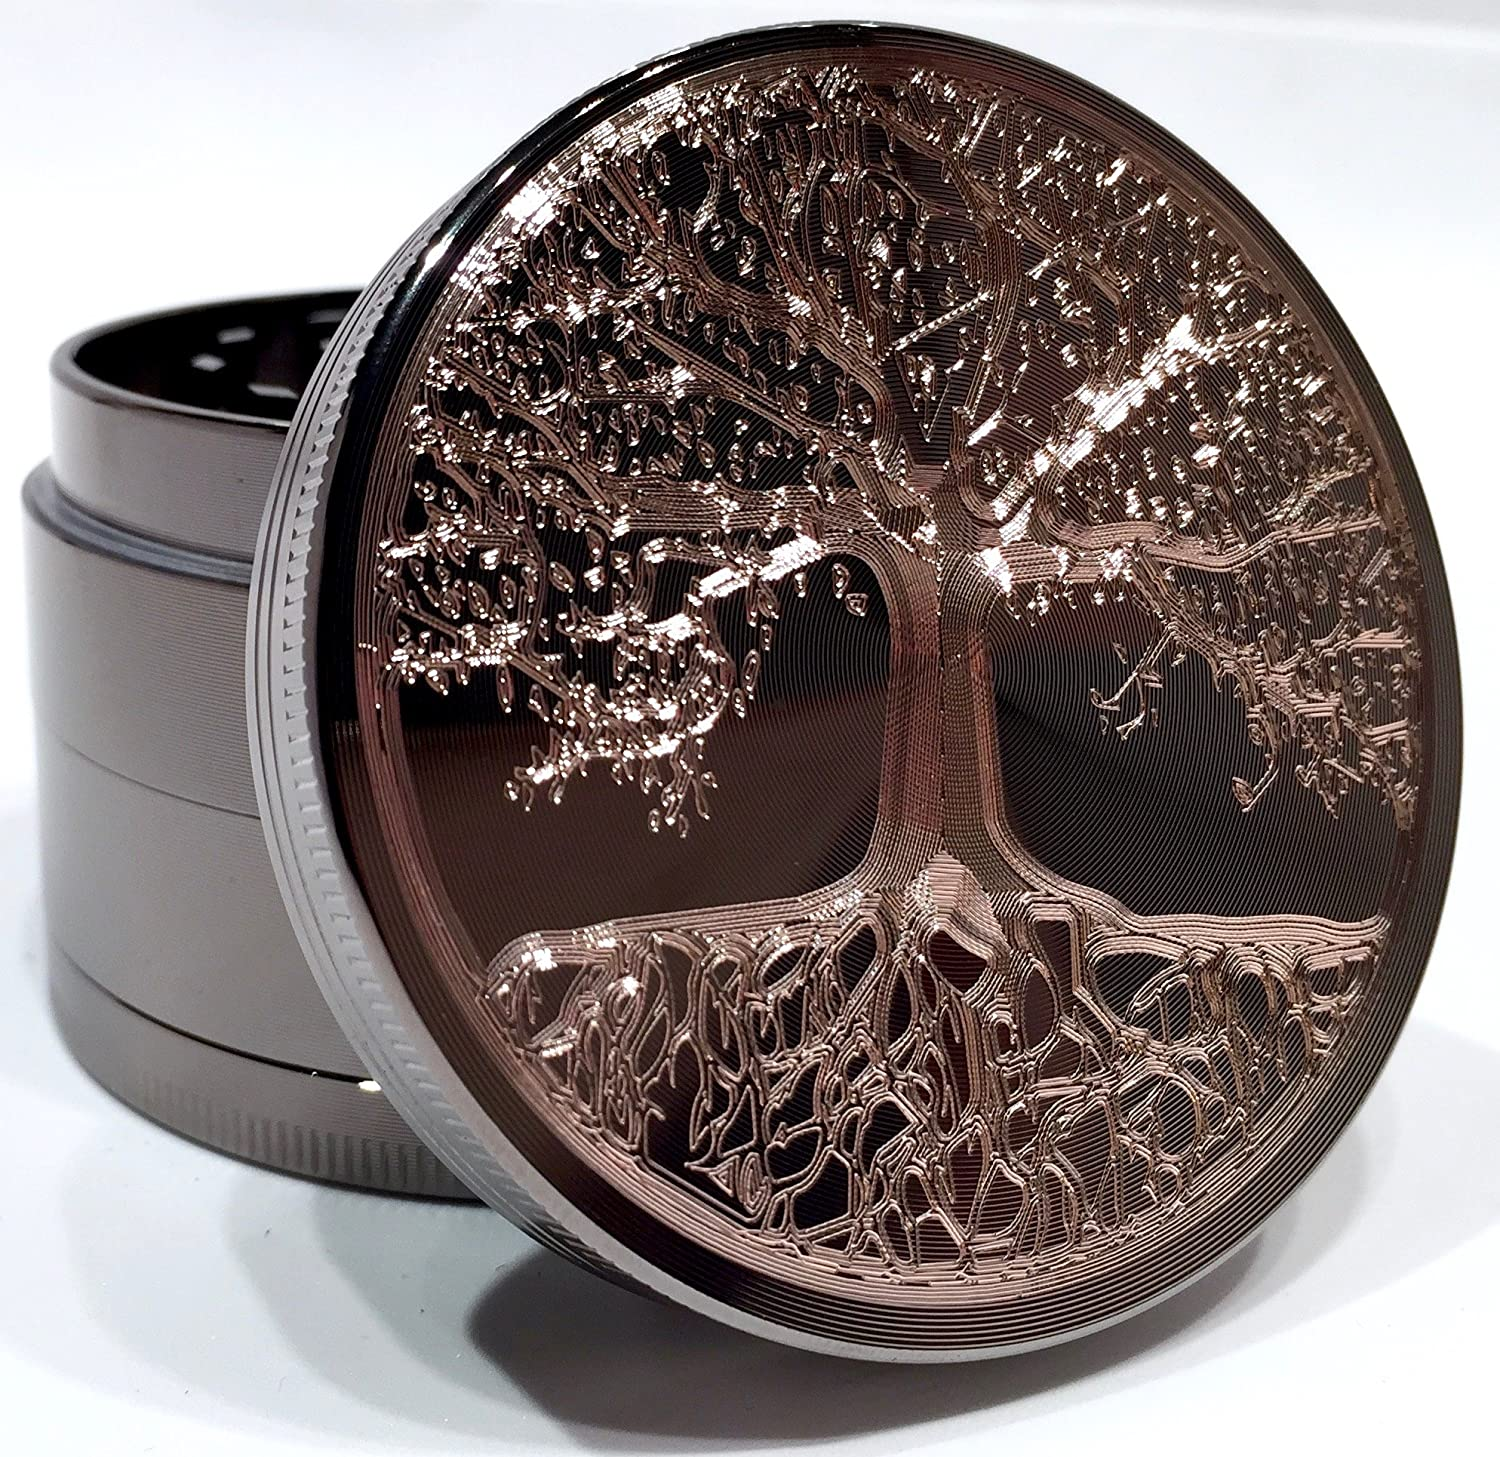 Tree of Life Tree of Life Etched Titanium Grinder Gift Box 4 Piece with Pollen Catcher Original Art 2.5 63mm